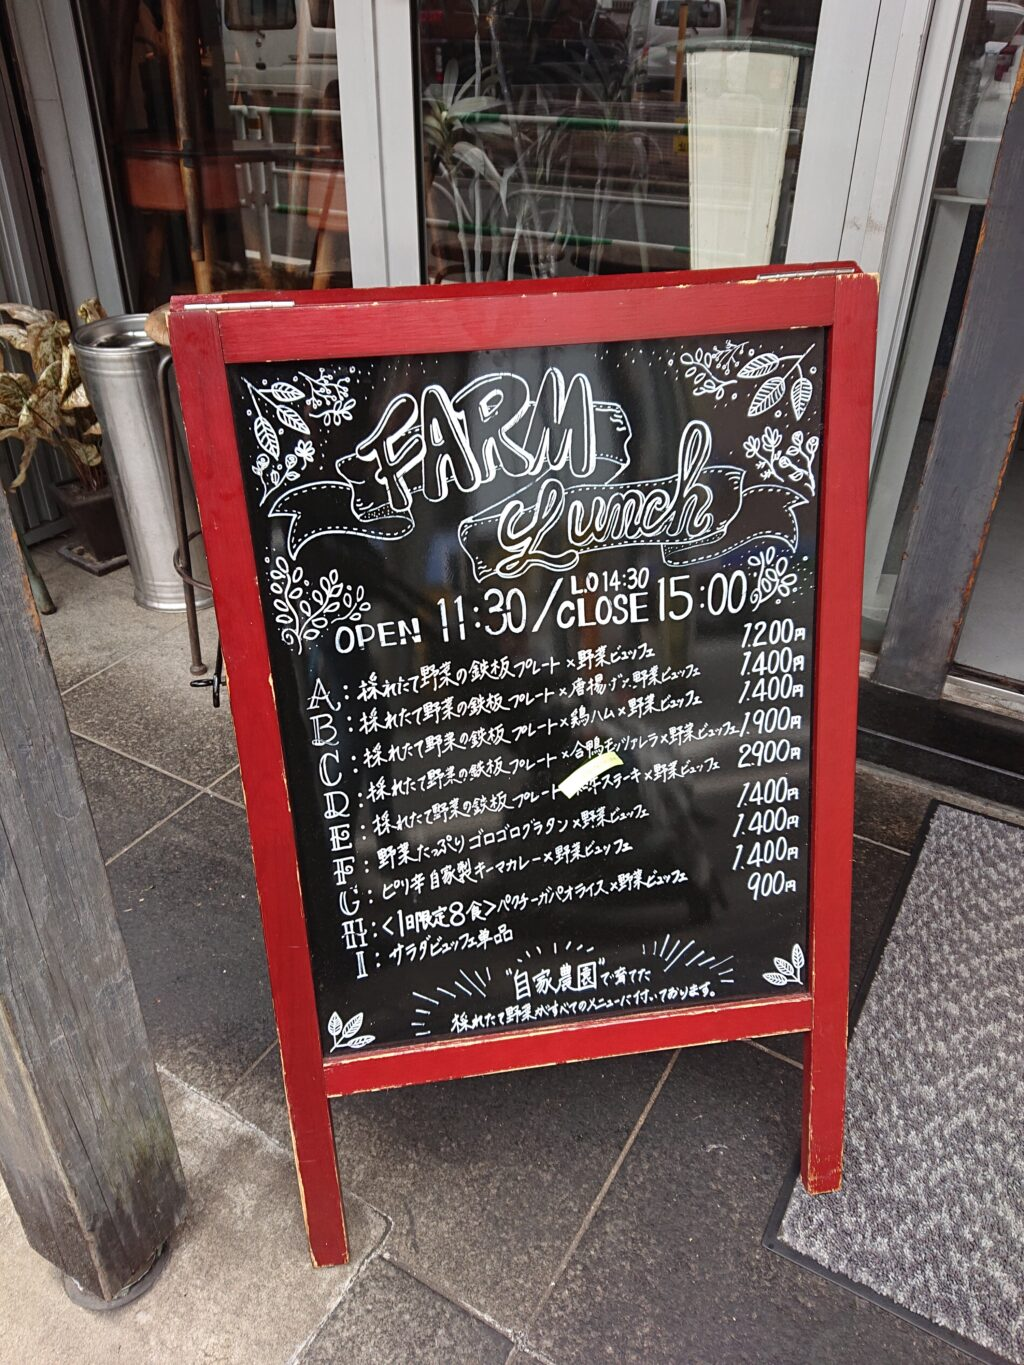 WE ARE THE FARM 渋谷 (【旧店名】STAND BY FARM 松濤) ランチメニュー